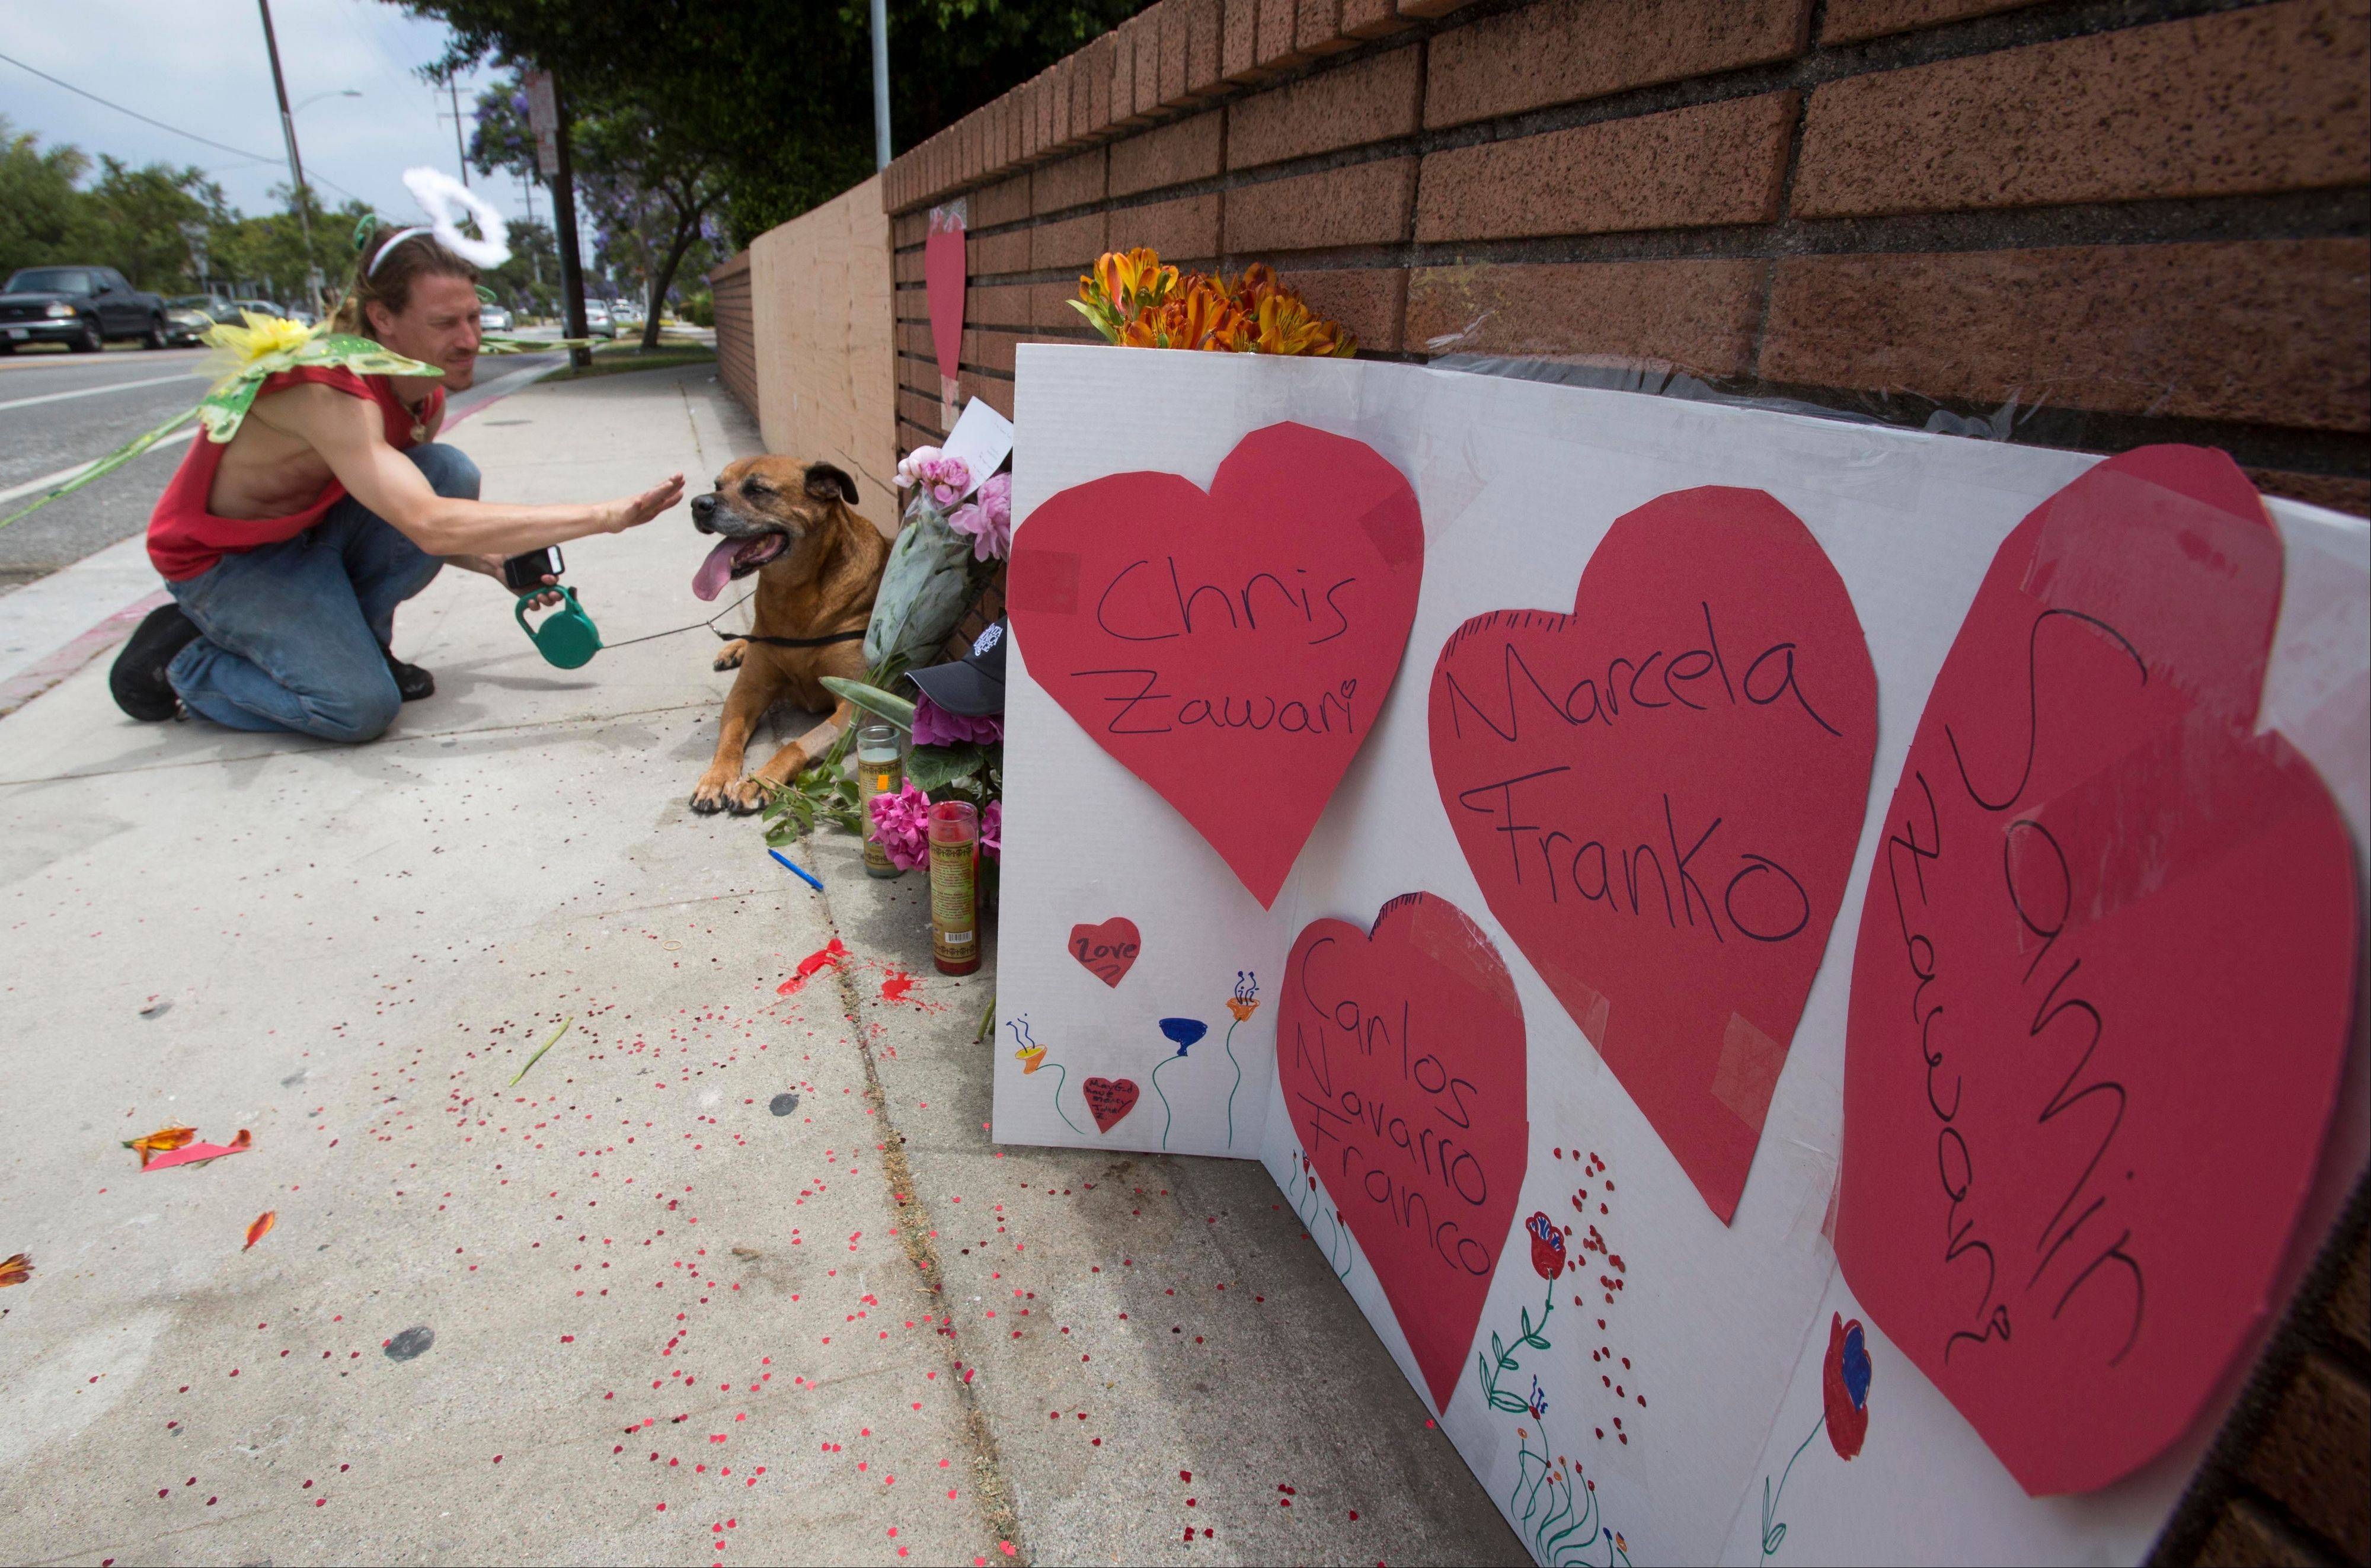 Nate Edelson, 39, a former student of Santa Monica College, dressed as a Fairly Angel, pets his dog Bull after putting heart-covered messages at a makeshift memorial at Santa Monica College Sunday in Santa Monica, Calif. A shooting rampage that resulted in six deaths ended at the campus on Friday.